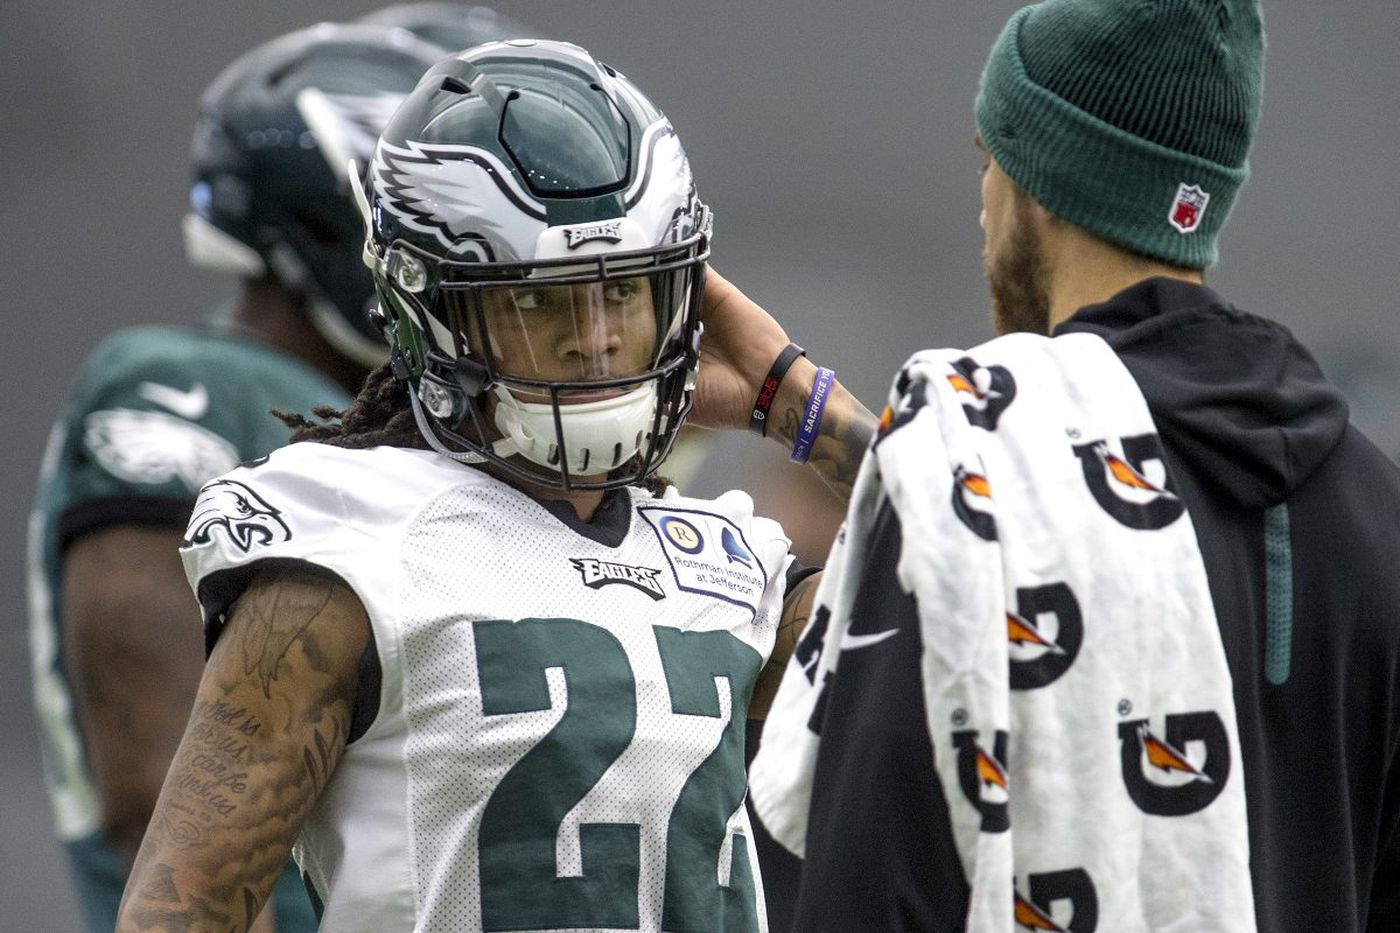 Eagles' Sidney Jones makes practice debut after 'long journey'